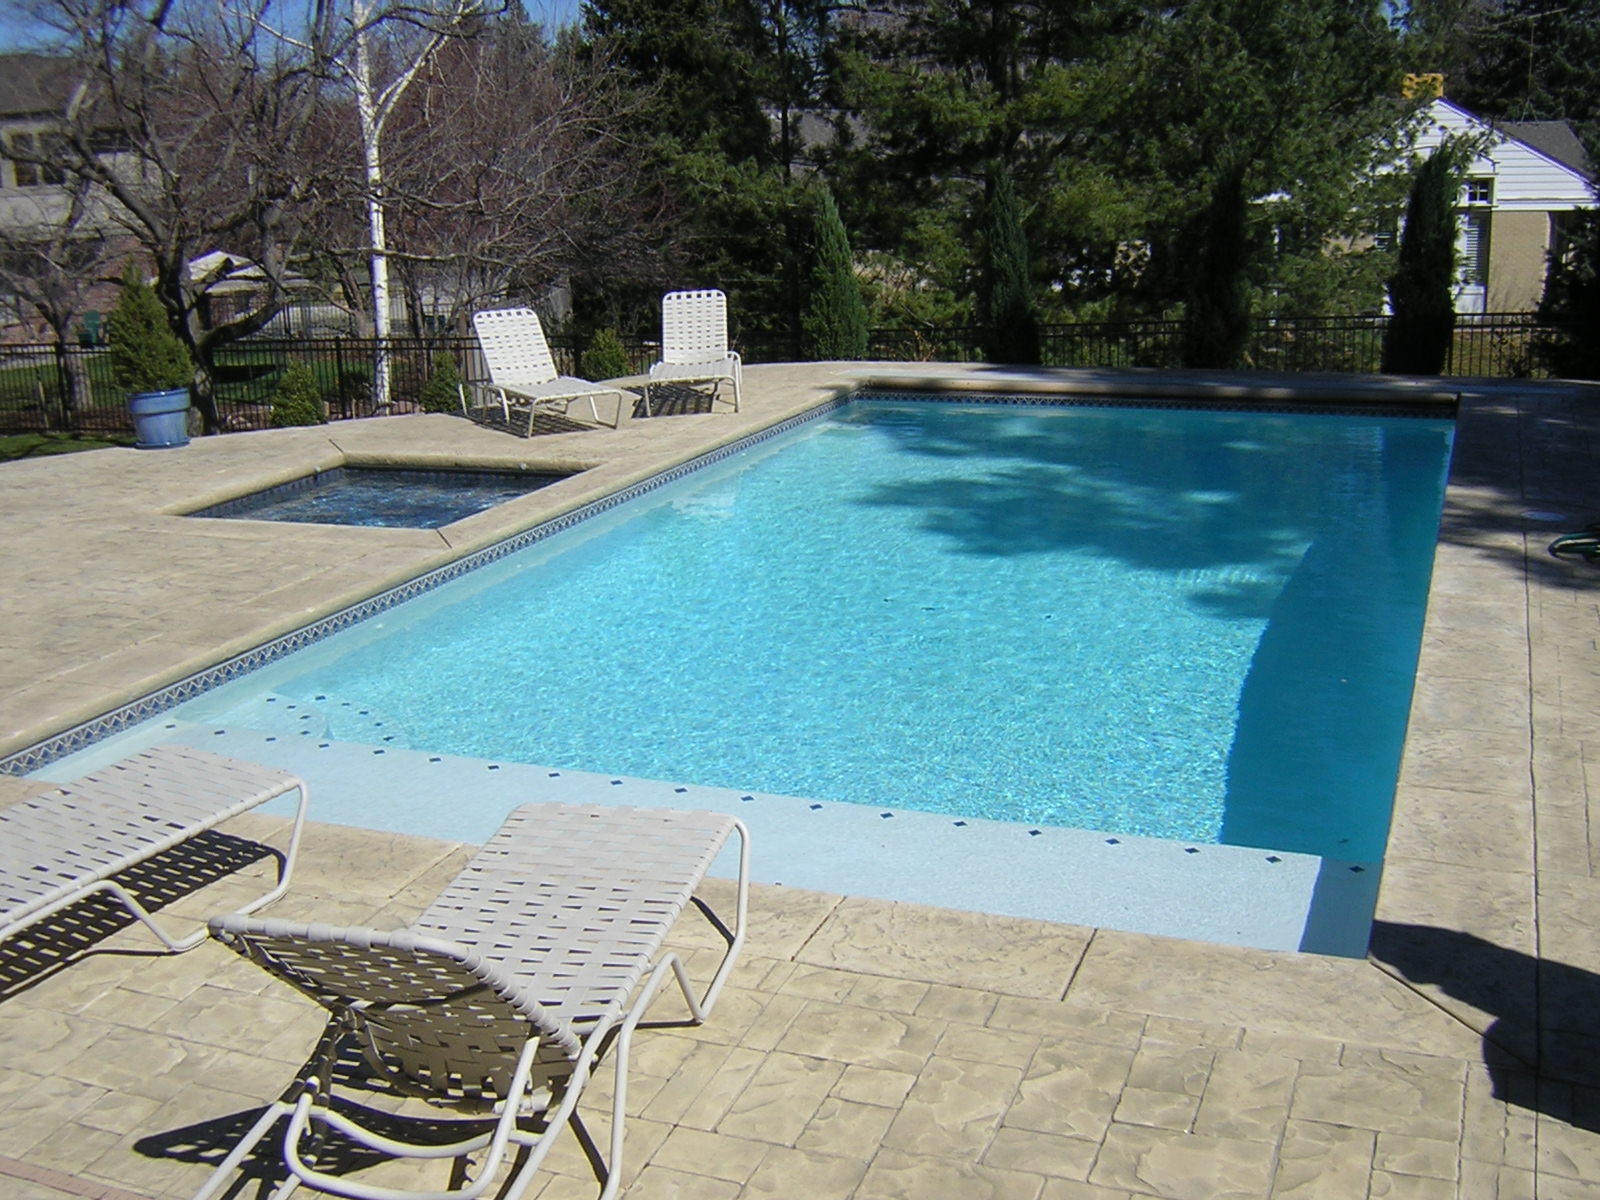 Pool And Spa Combos Pool And Spa Experts Pool And Spa